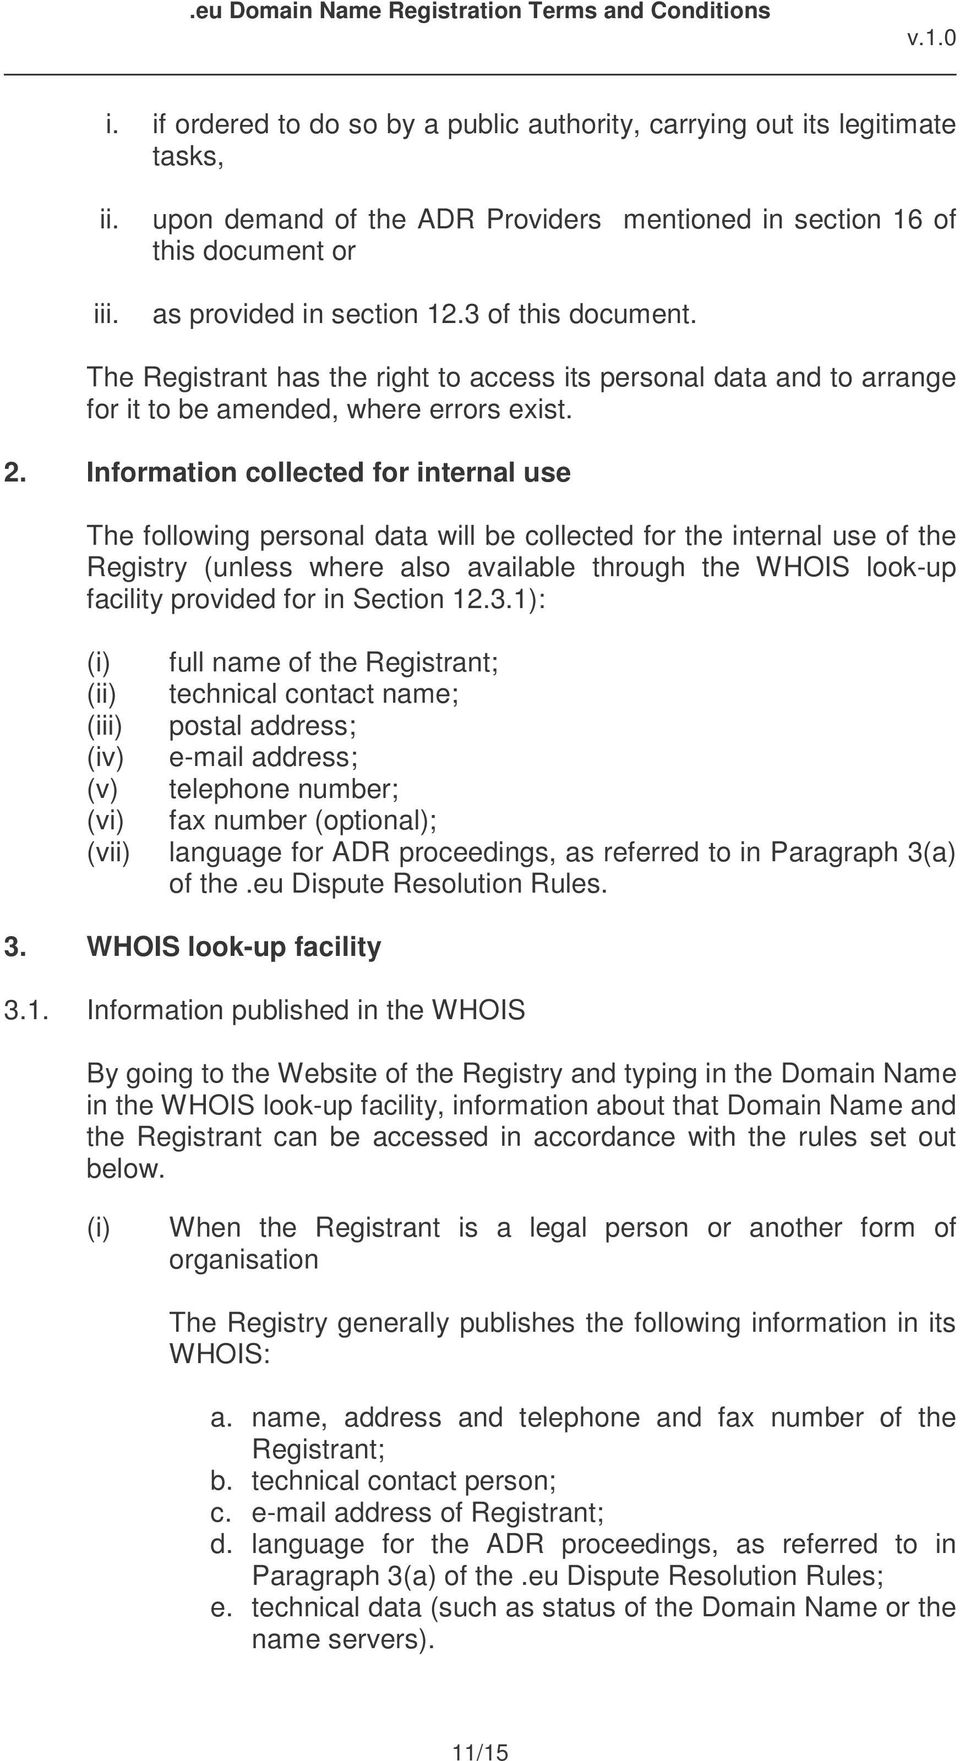 Information collected for internal use The following personal data will be collected for the internal use of the Registry (unless where also available through the WHOIS look-up facility provided for